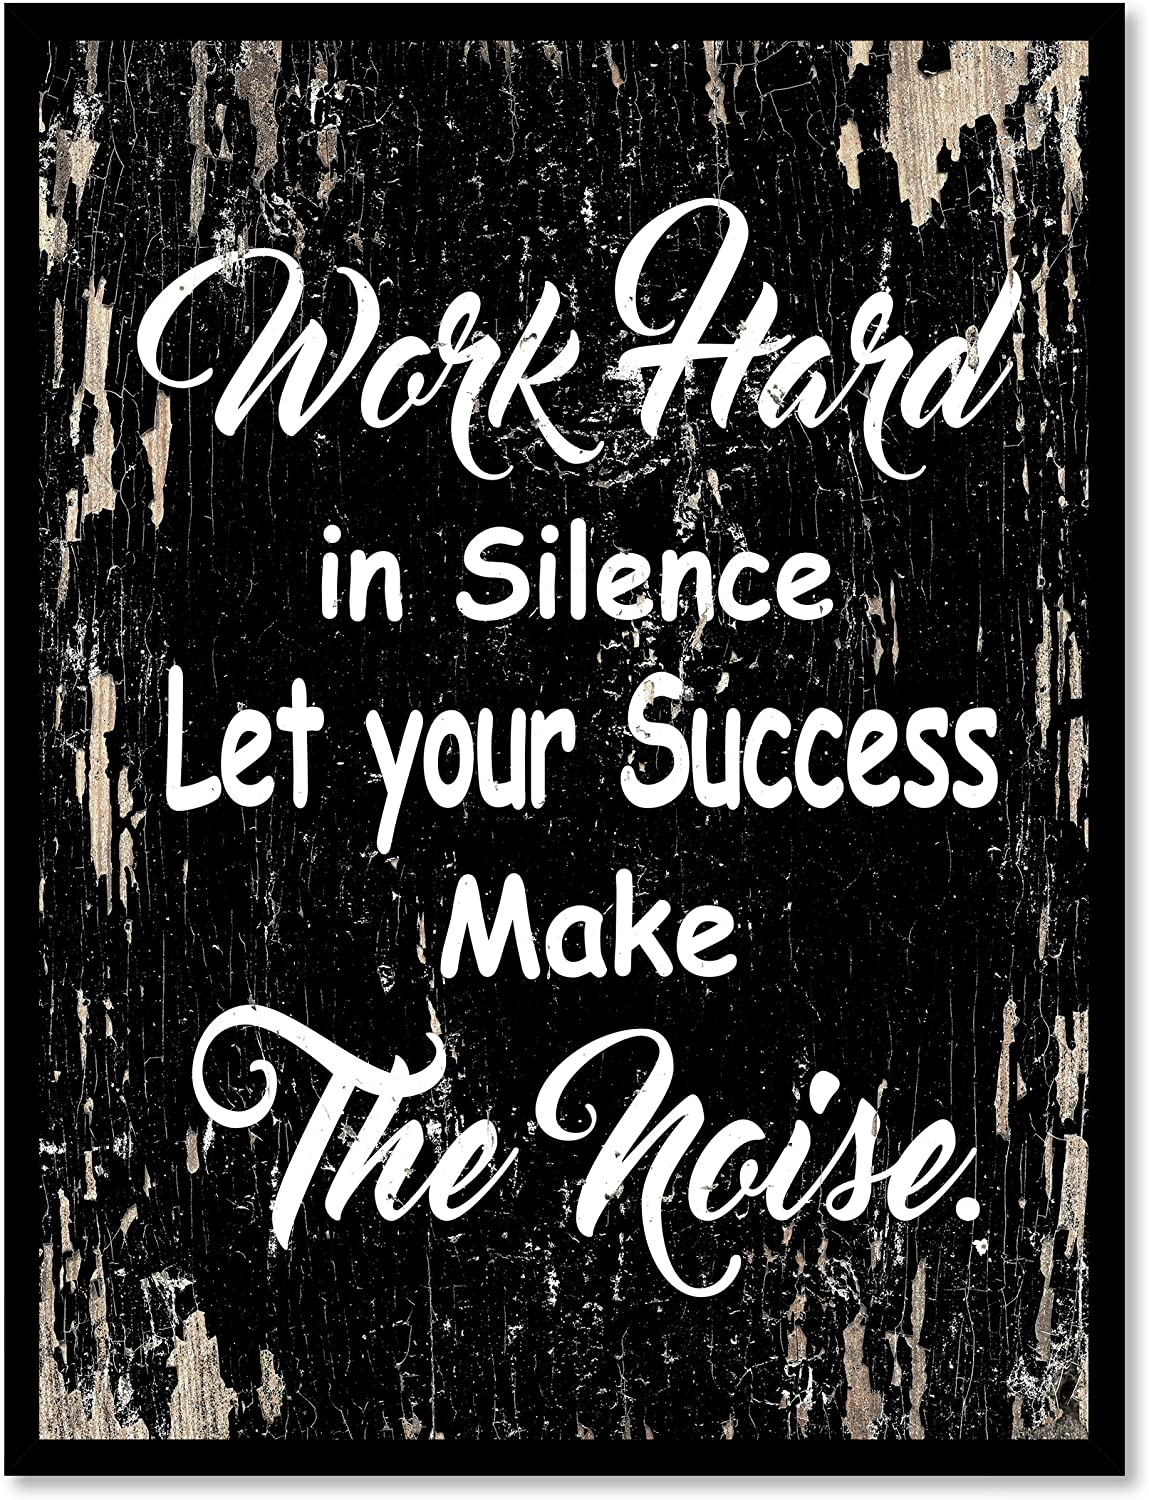 SpotColorArt Work Hard in Silence Let Your Success Make Noise Framed Canvas Art 22 x 29 Aqua